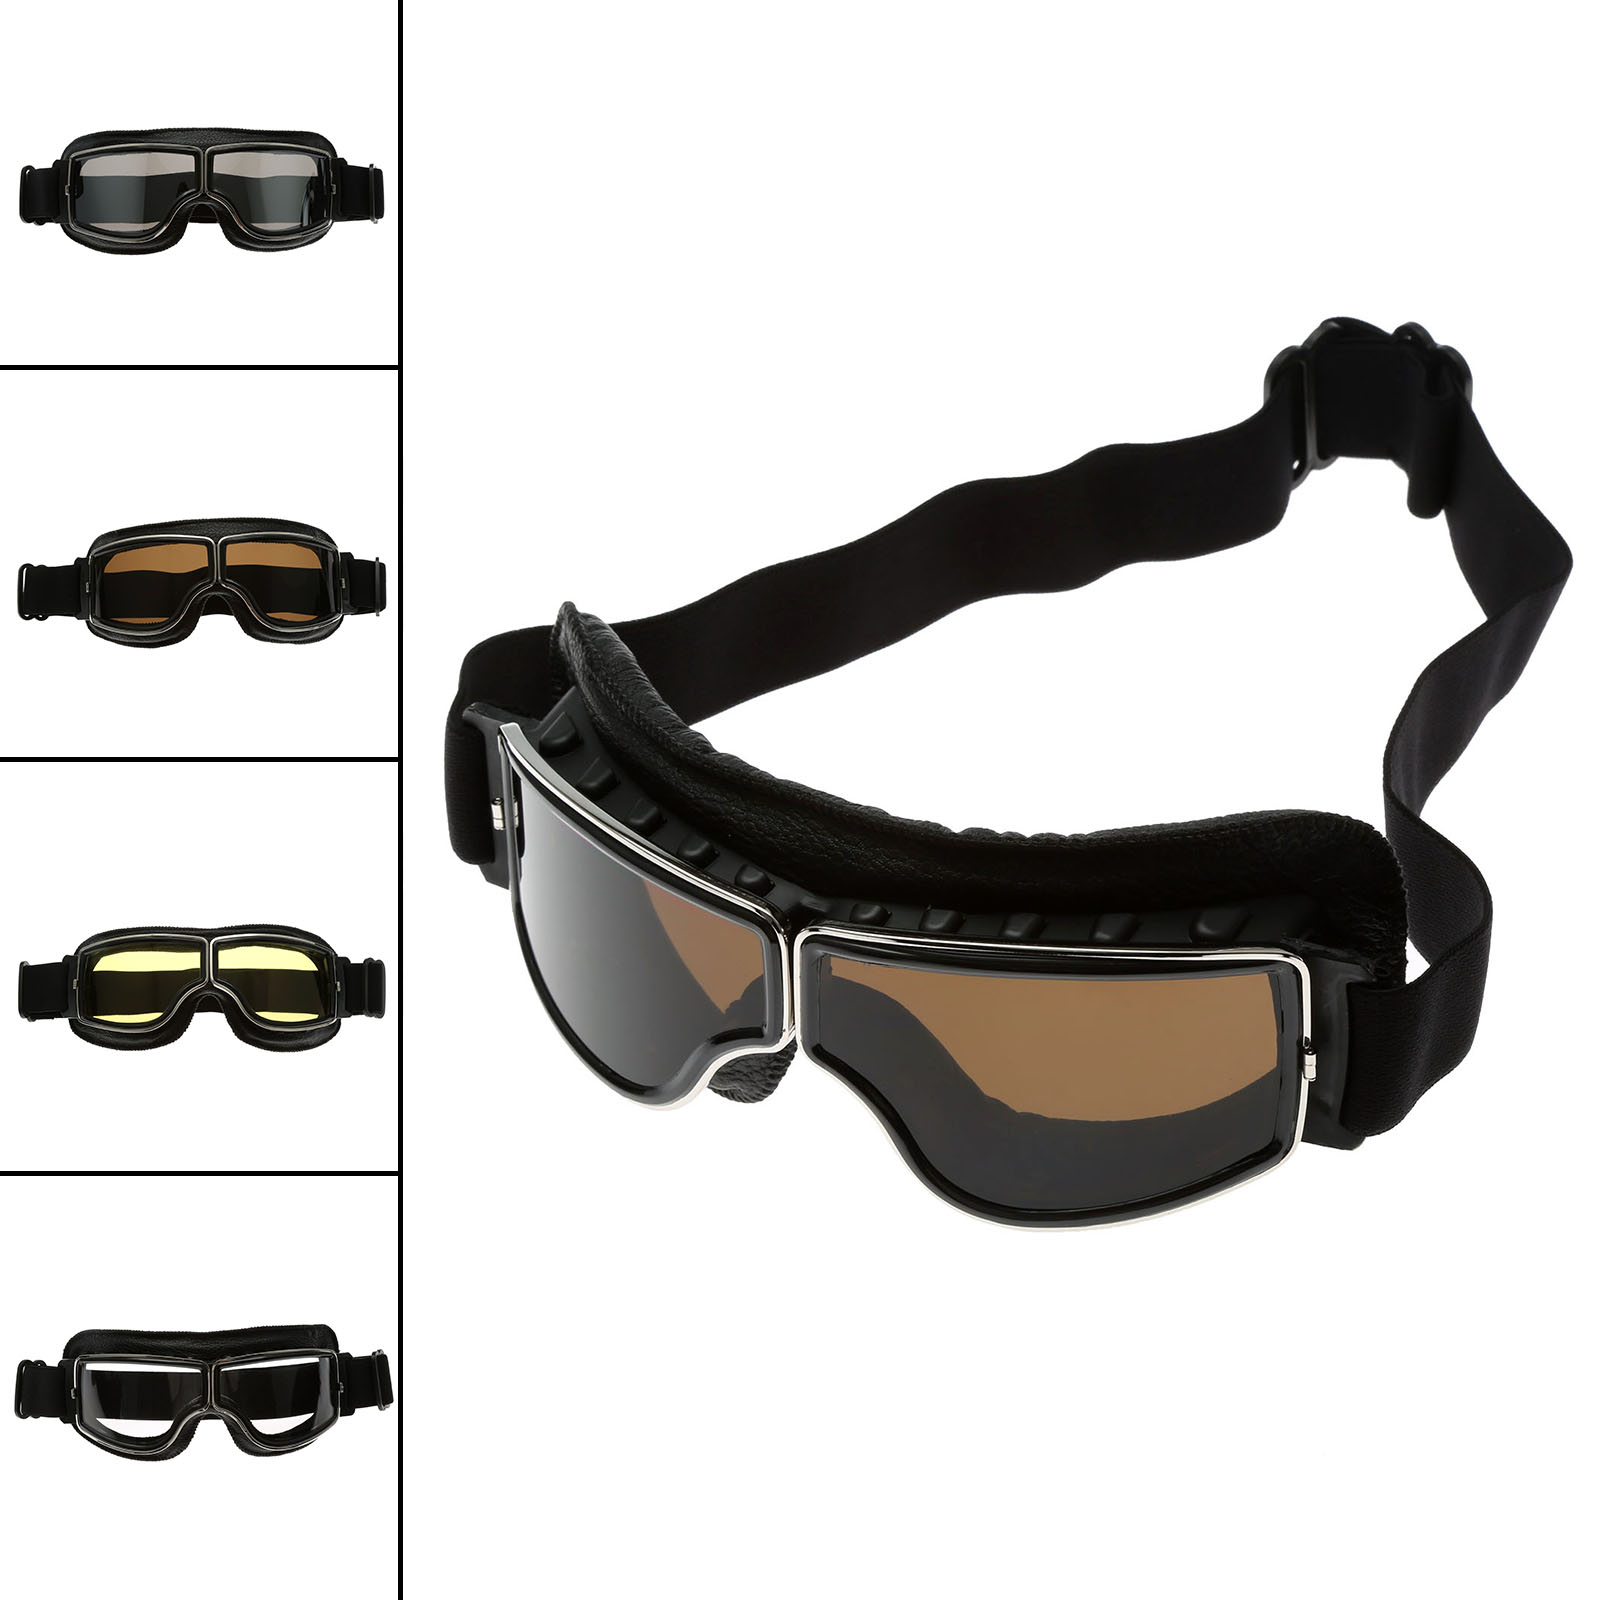 Retro Motorcycle Goggles For Harley Motocross Helmet Glasses UV Protection Ski Snowboard Skate Goggle Retro Eyewear Lens Leather